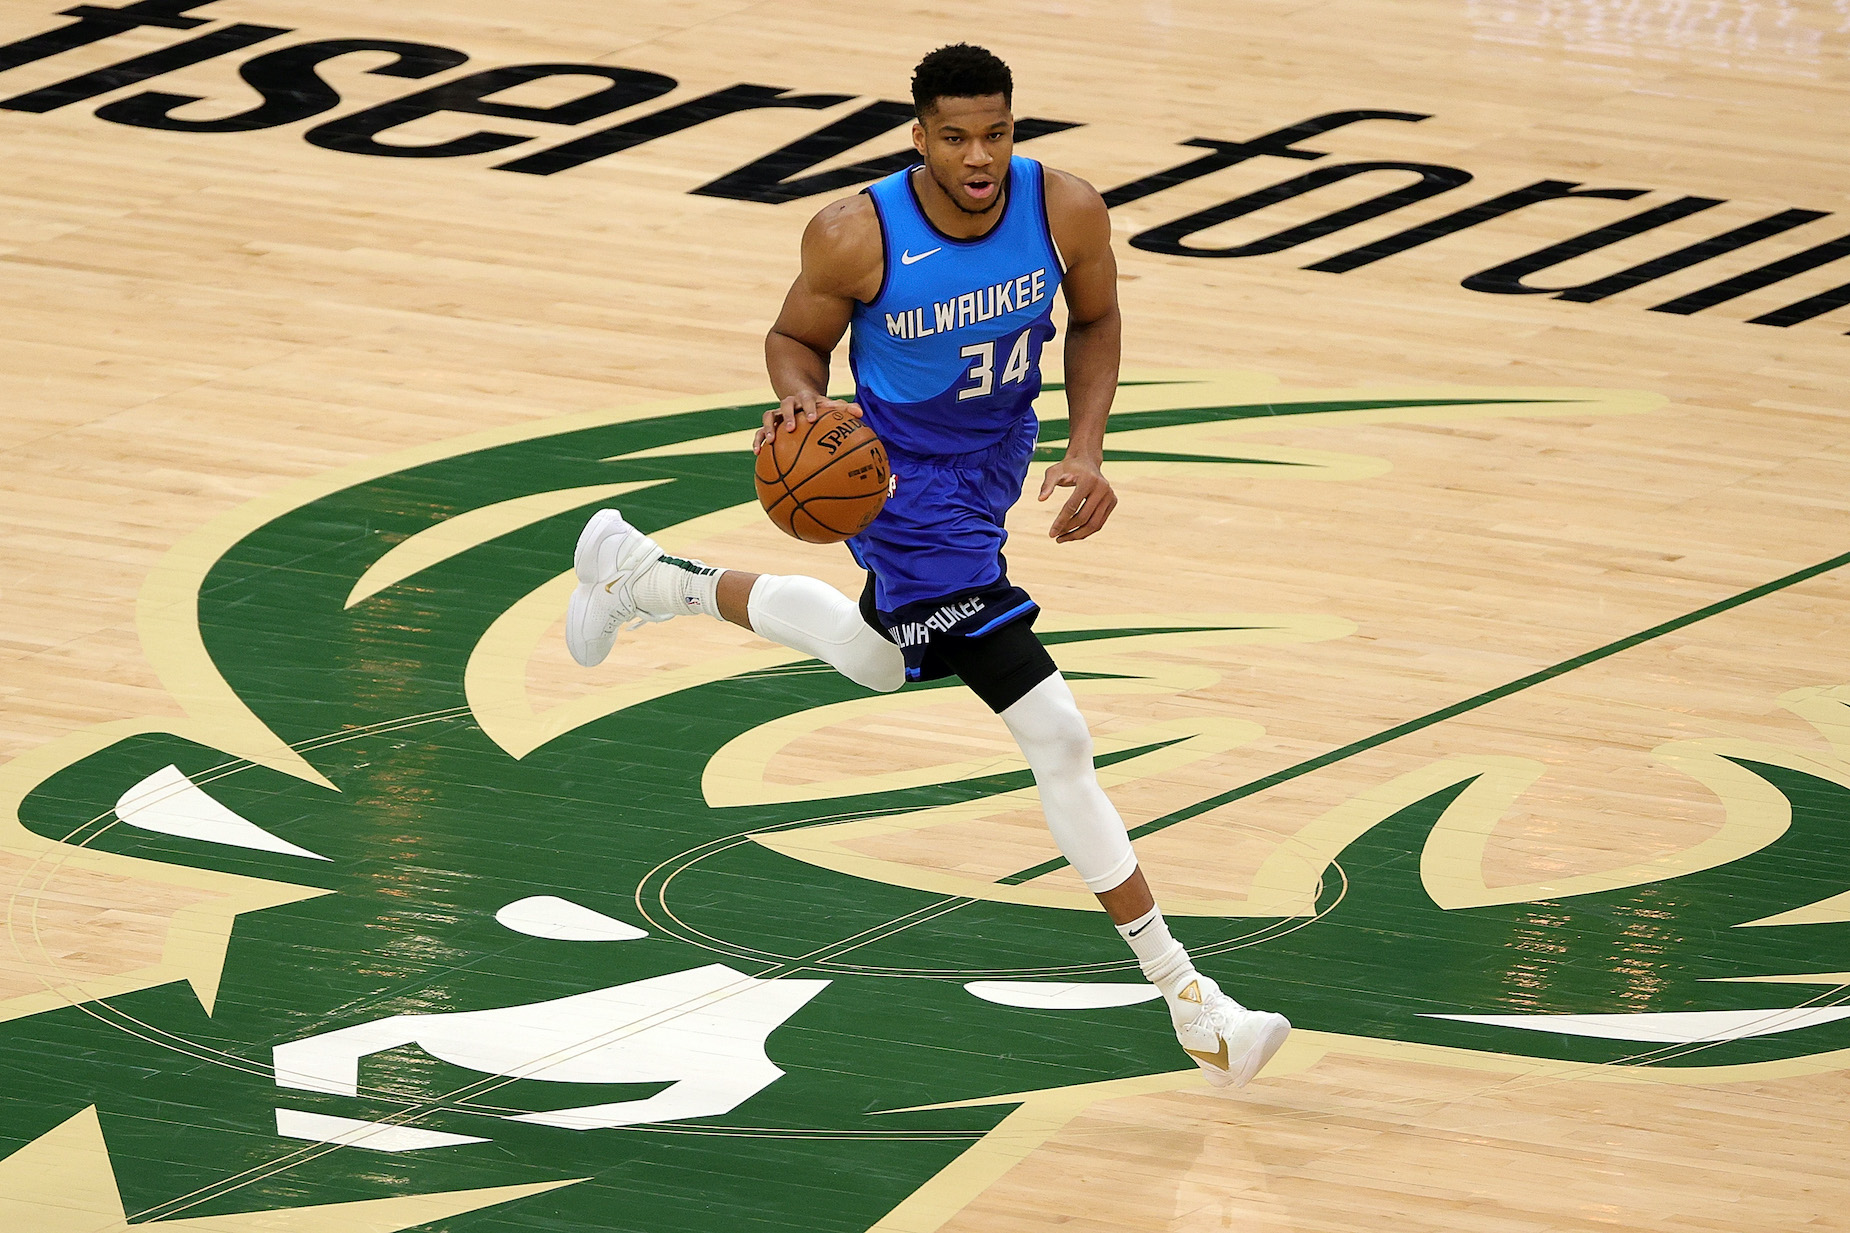 Milwaukee Bucks star Giannis Antetokoumpo has earned a massive contract with his on-court skills.